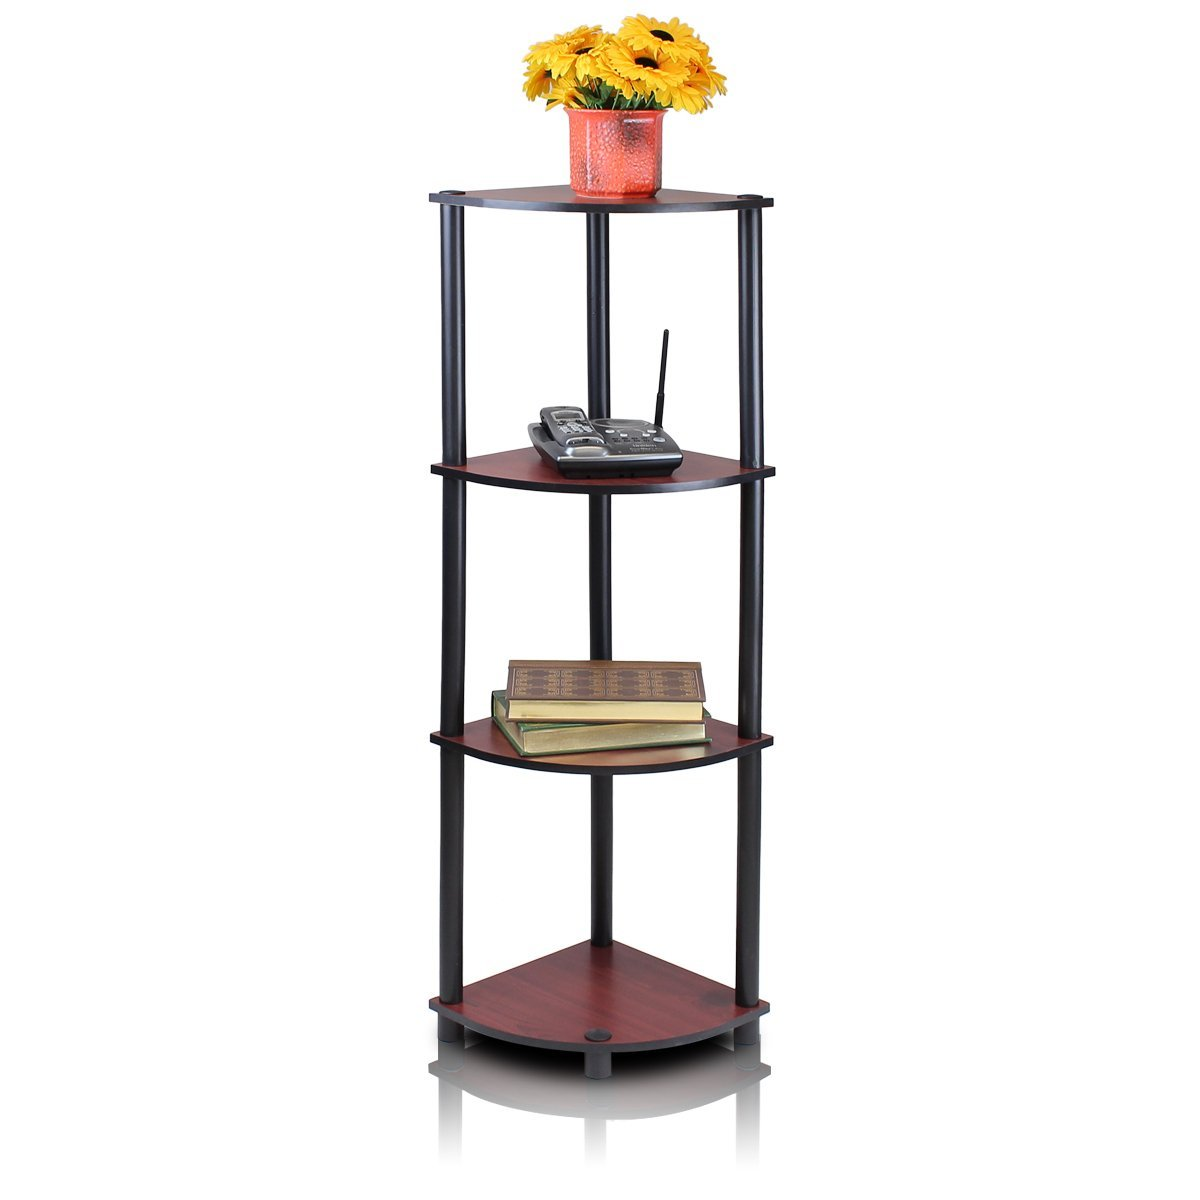 187 Furinno 4 Tier Corner Shelving Unit And Display Rack